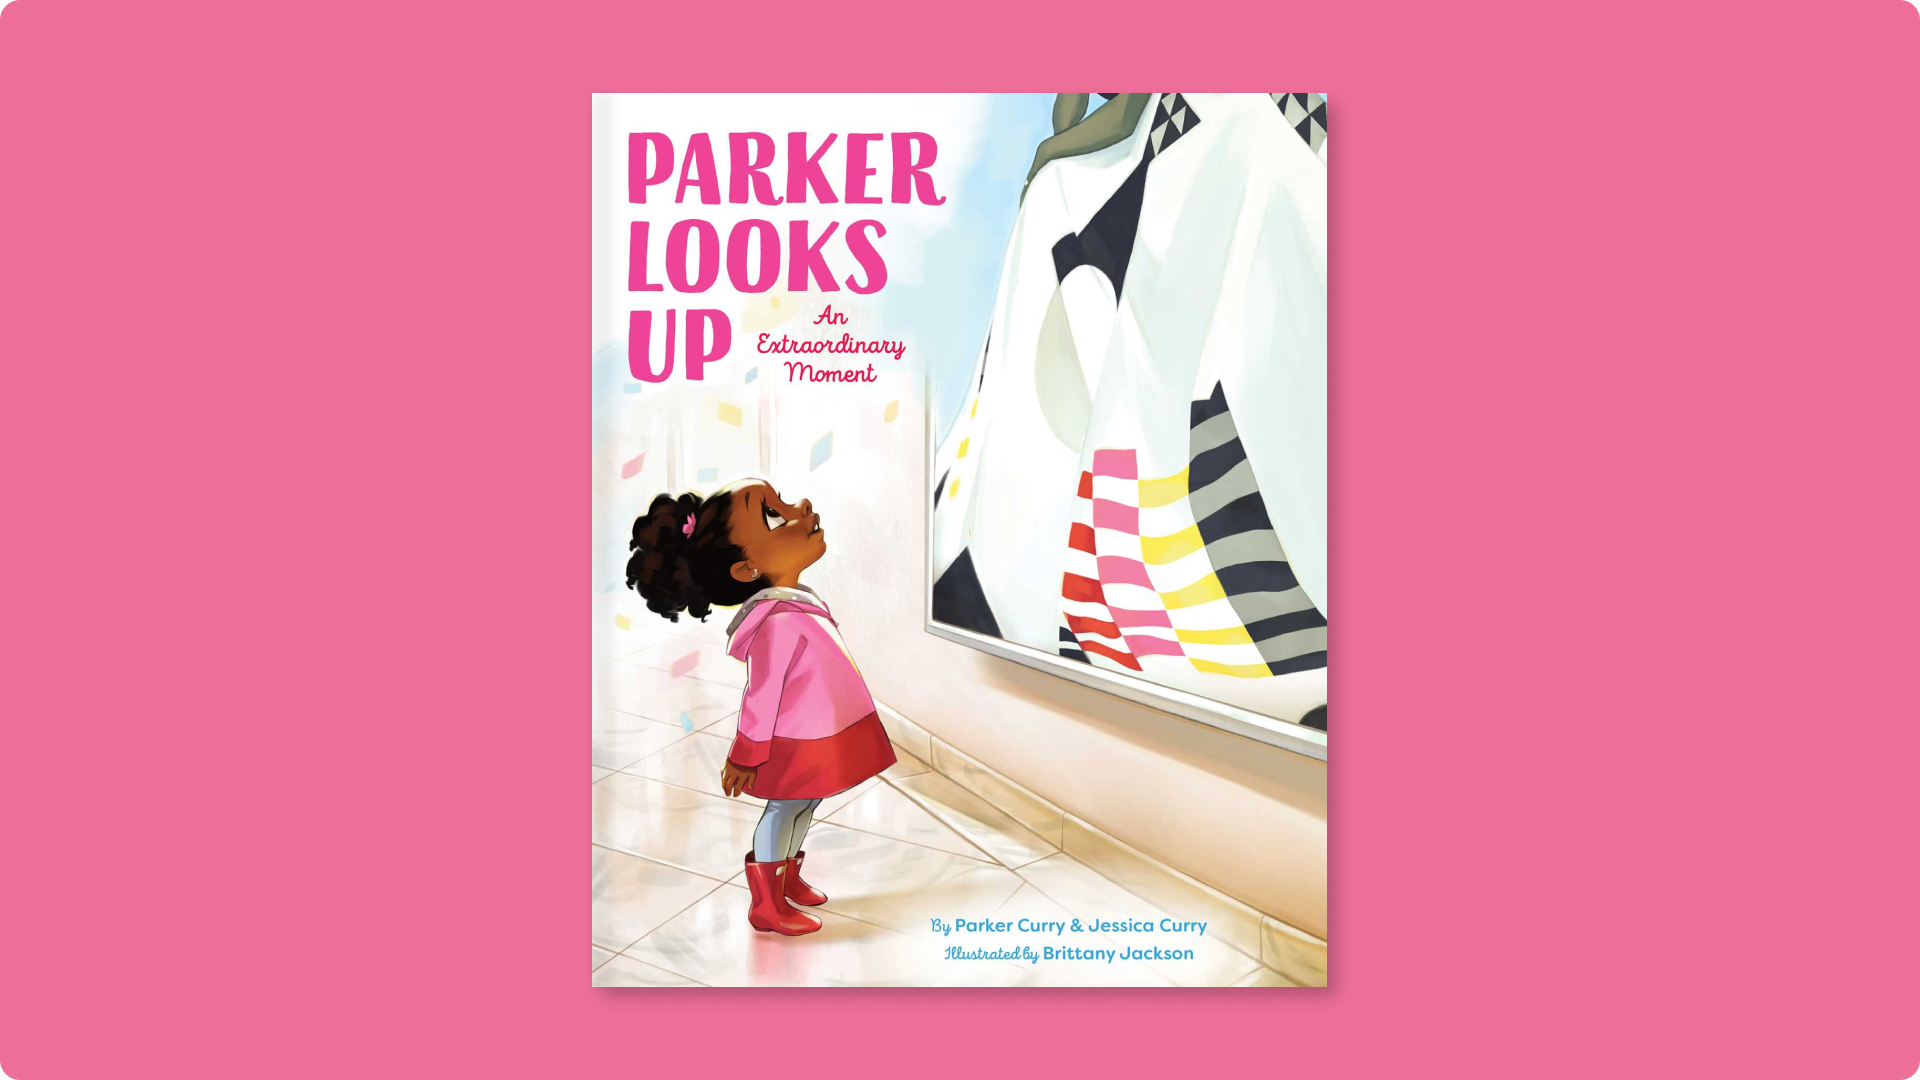 The stunning cover of Parker Looks Up by Parker Curry and Jessica Curry